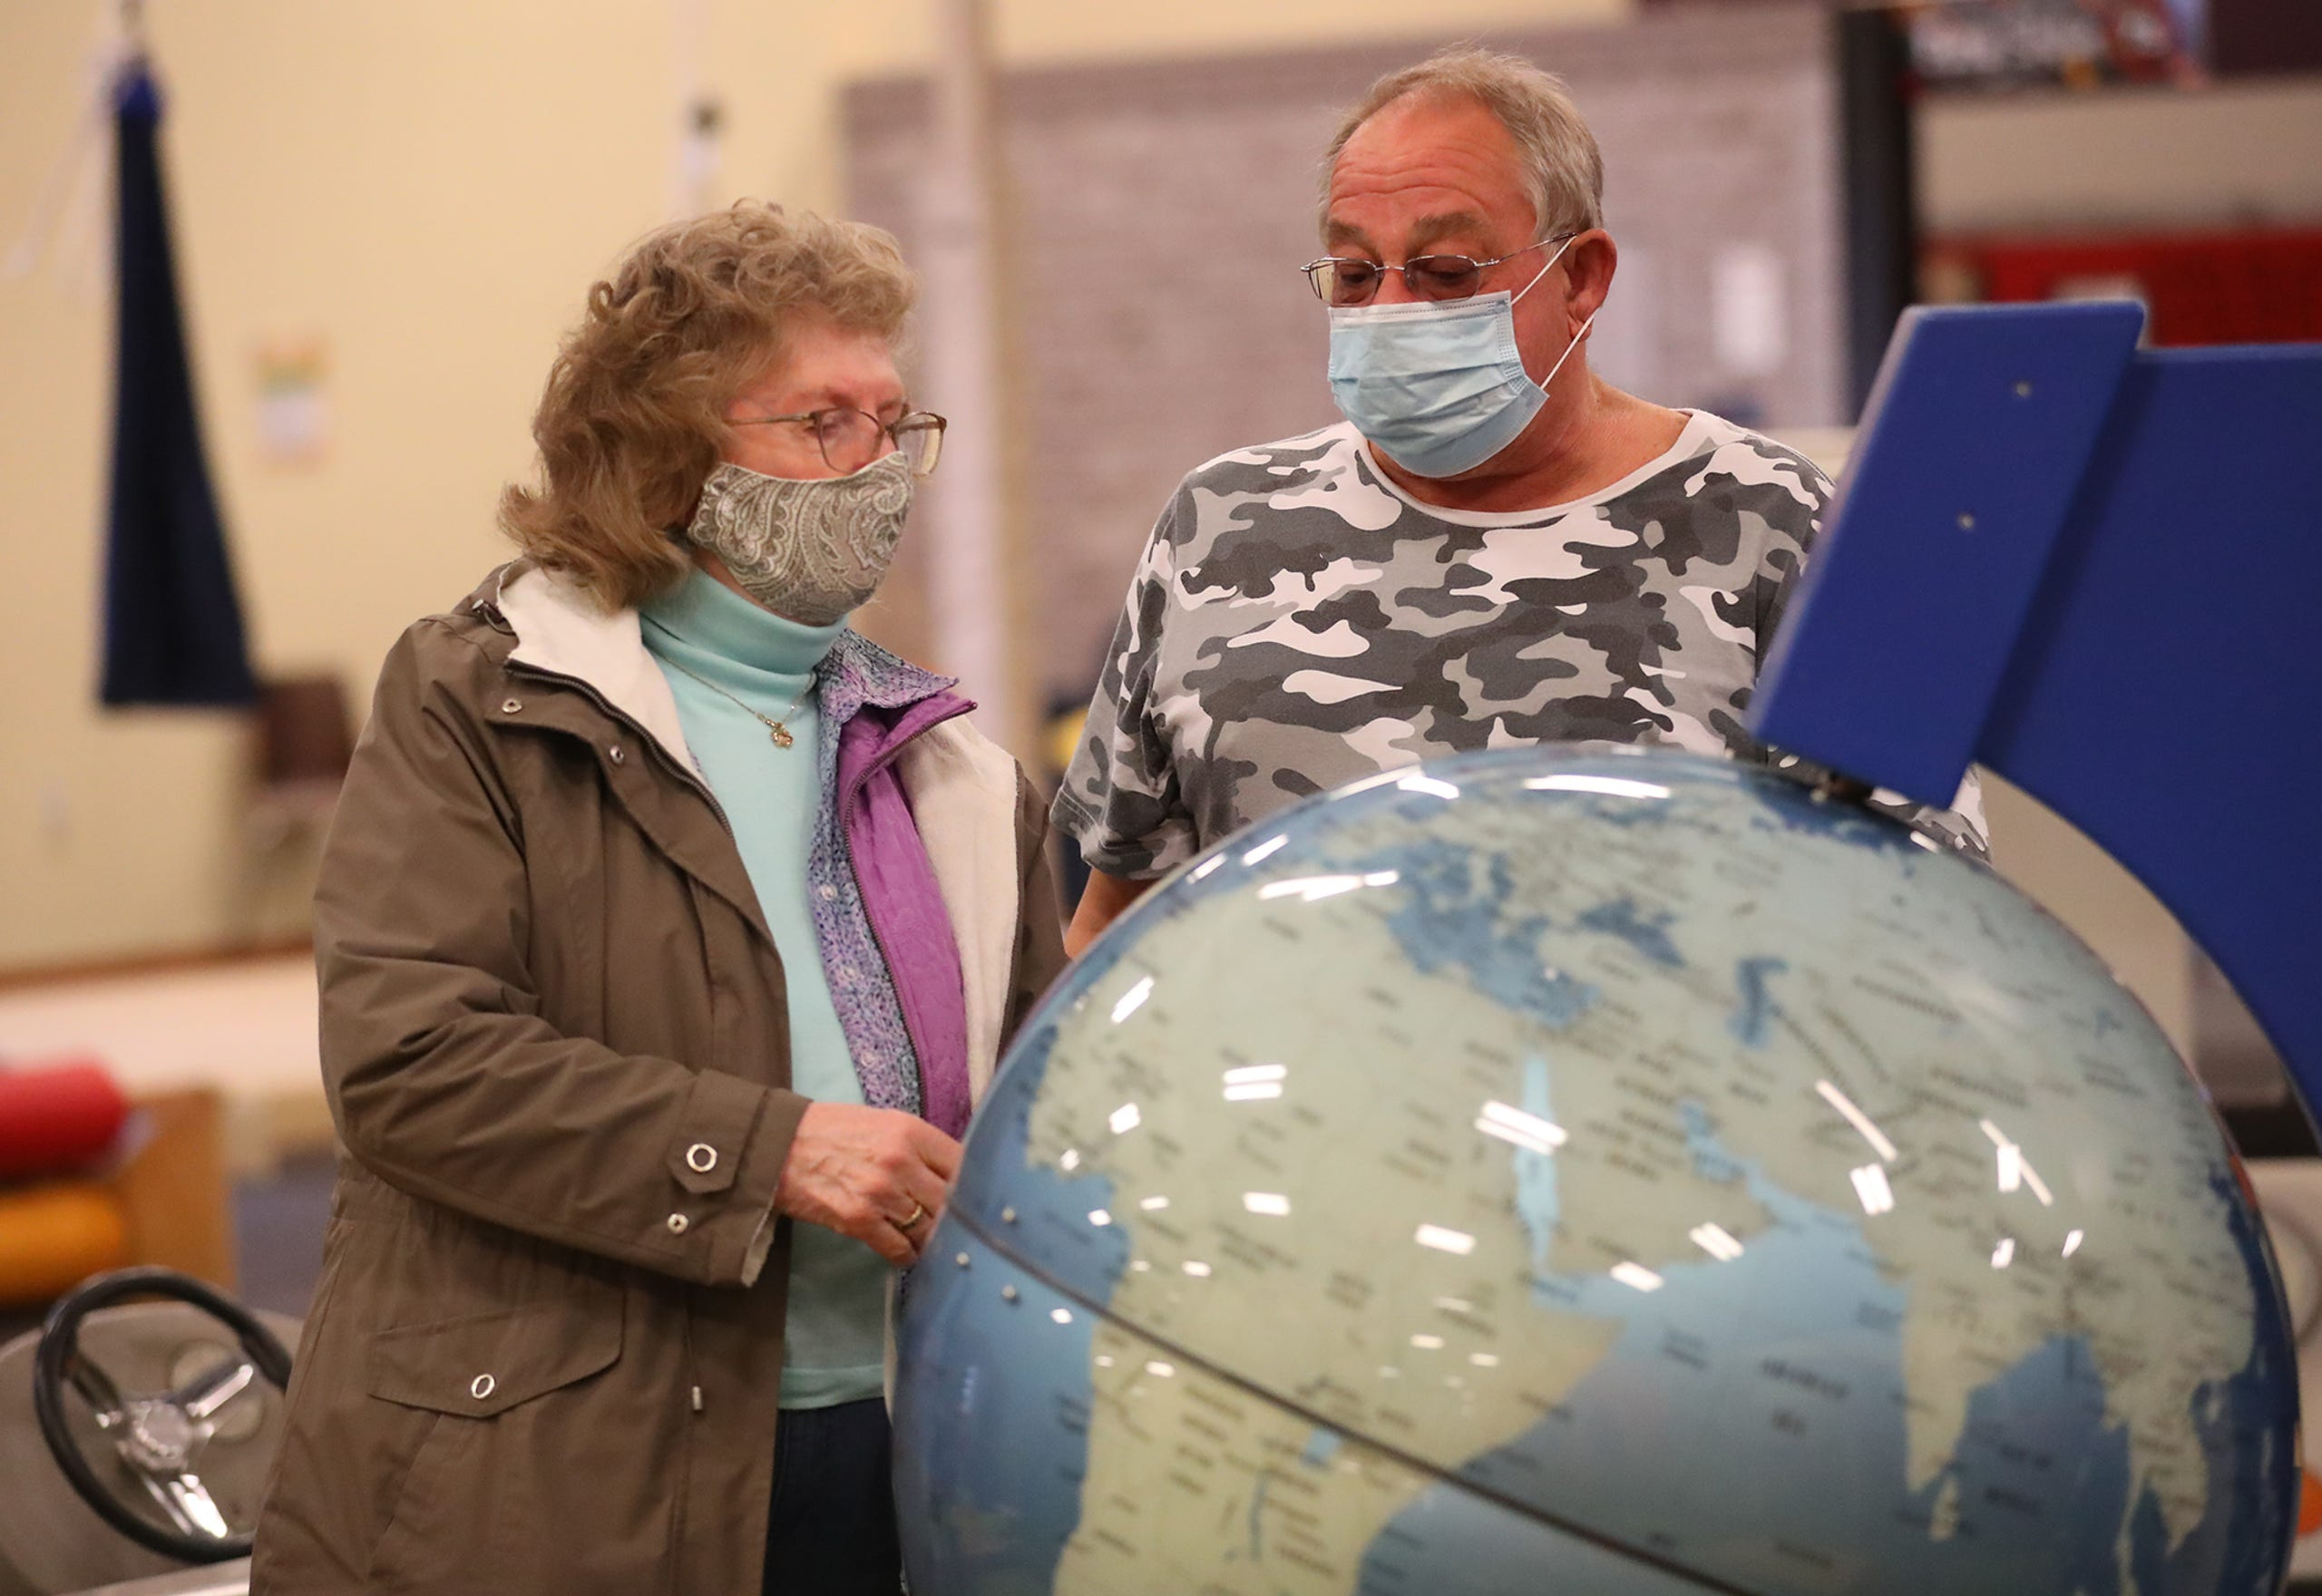 Angie Bodoh and Mark Brunelli of Fond du Lac look at a globe Saturday, March 13, 2021 at the Fond du Lac Children's Museum in Fond du Lac, Wis. The museum opens today to the public after being closed because of the Covid-19 pandemic. Doug Raflik/USA TODAY NETWORK-Wisconsin